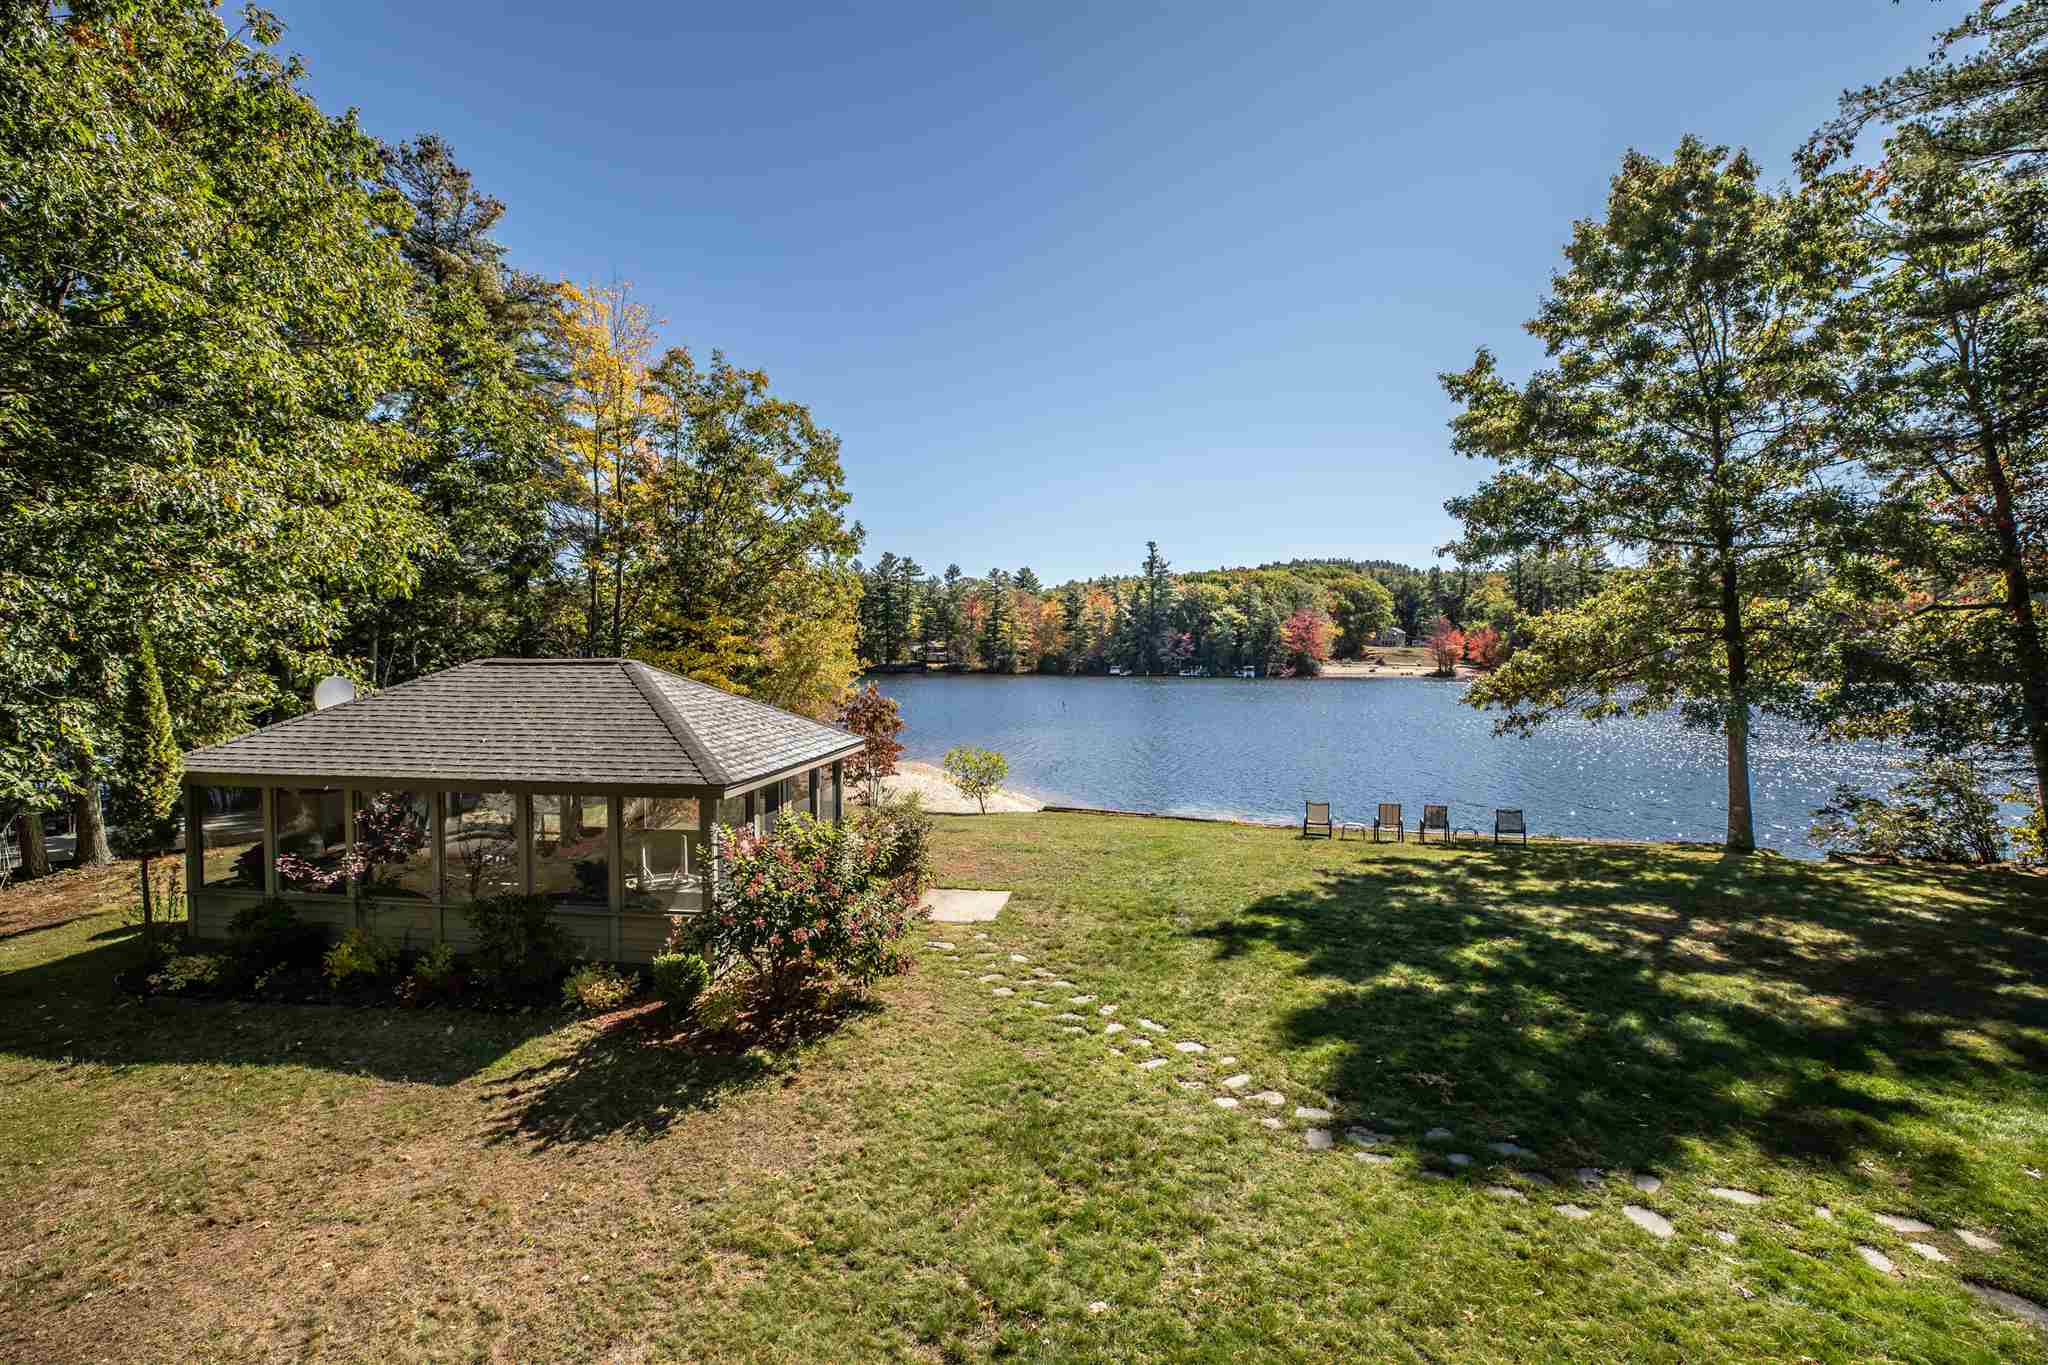 MLS 4833377: 20 Browns Point Road, Rindge NH